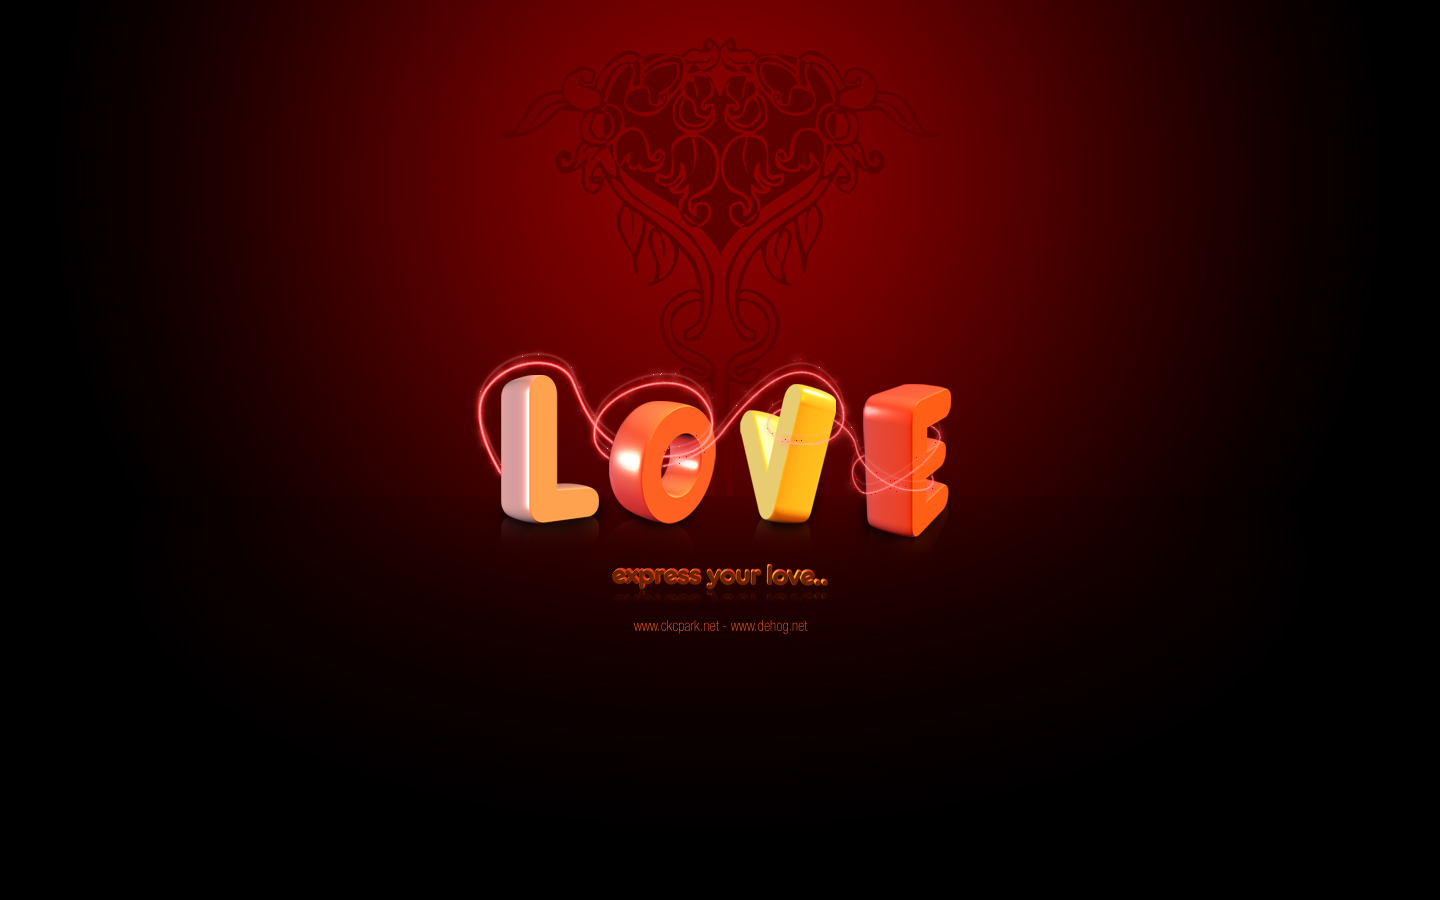 Love Wallpaper In Hd Quality : Love High Definition Wallpaper - Wallpaper, High Definition, High Quality, Widescreen